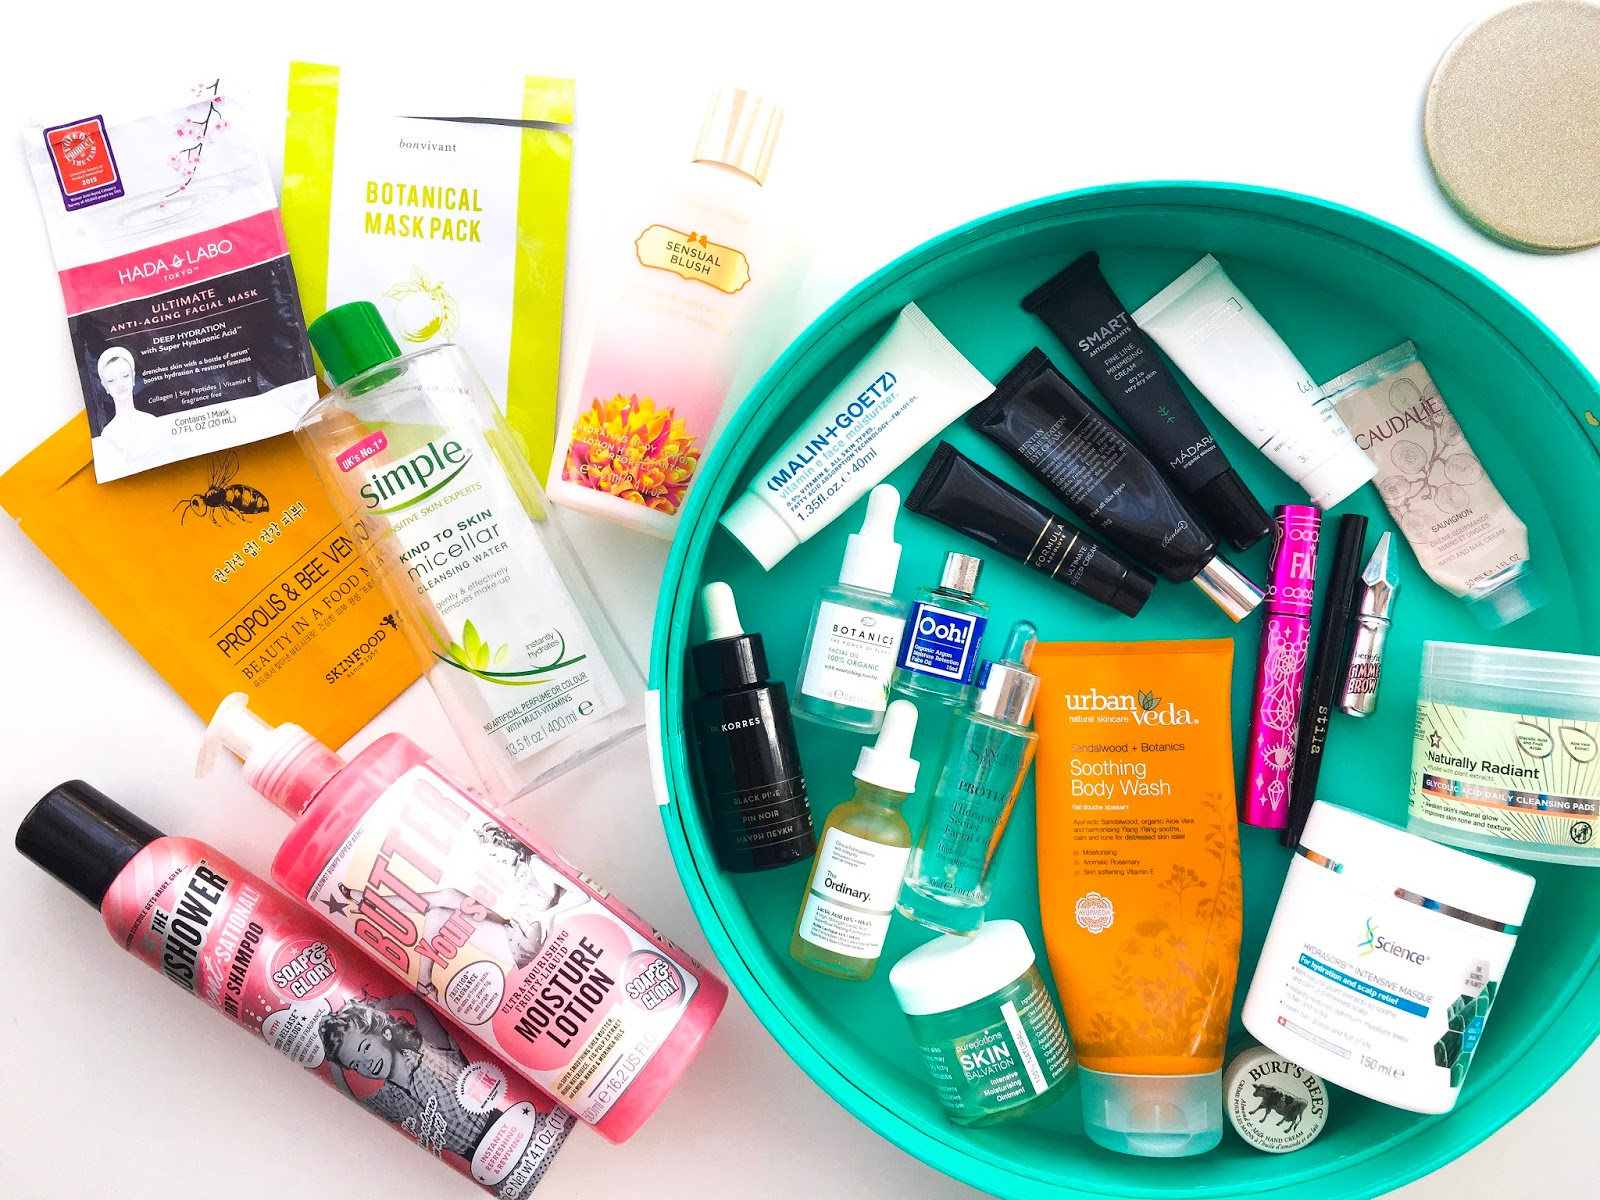 september empties, mini reviews, skincare reviews,